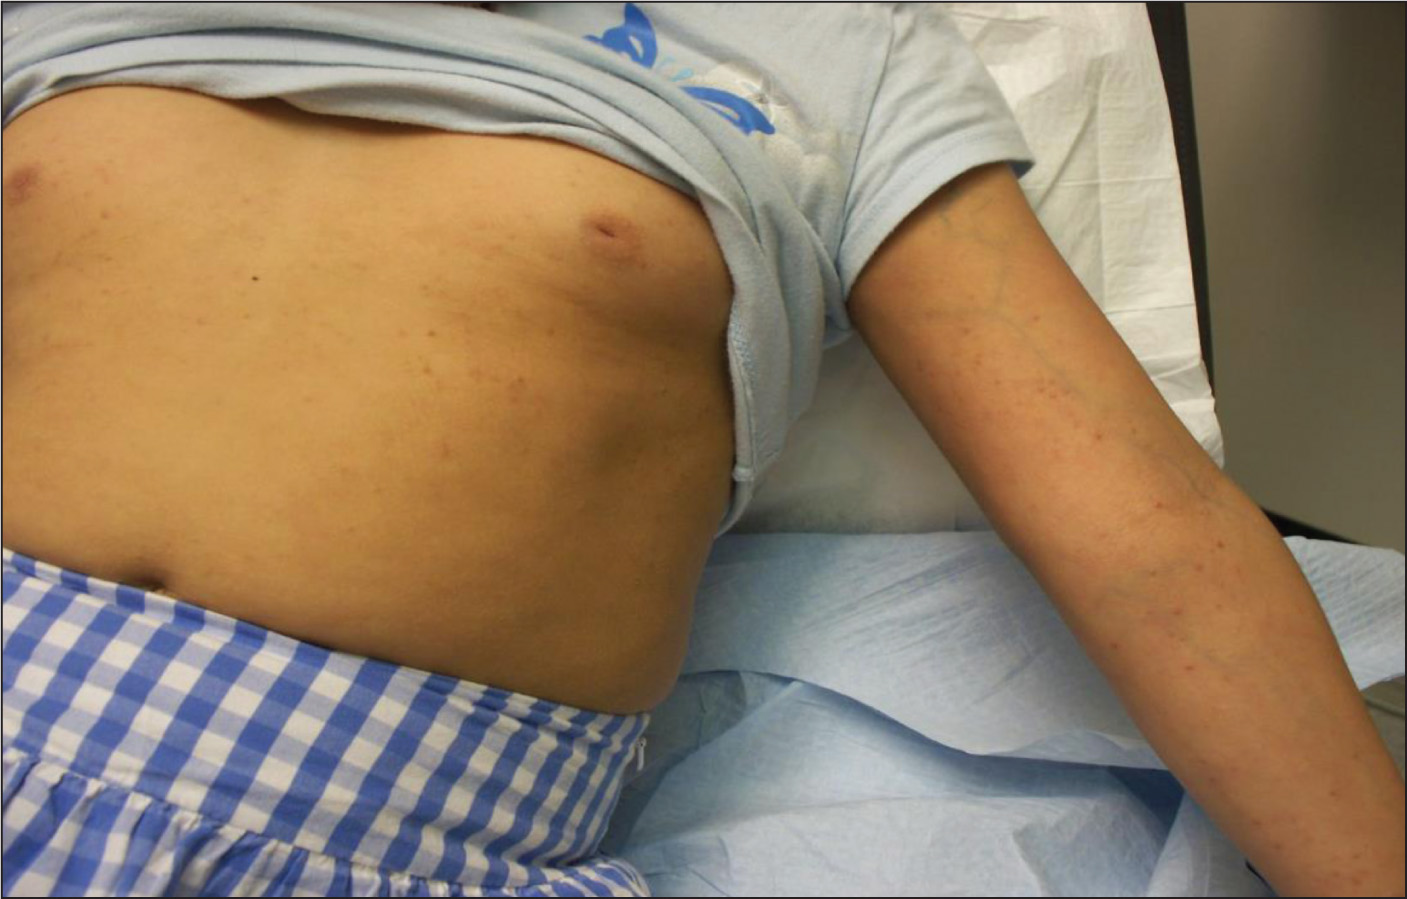 Hundreds of tan-brown, 1- to 2-mm papules distributed on the upper chest, flexor surfaces of the arms, the forearms, and in a band-like distribution across the upper thighs.Images courtesy of Kavita Beri, MD.